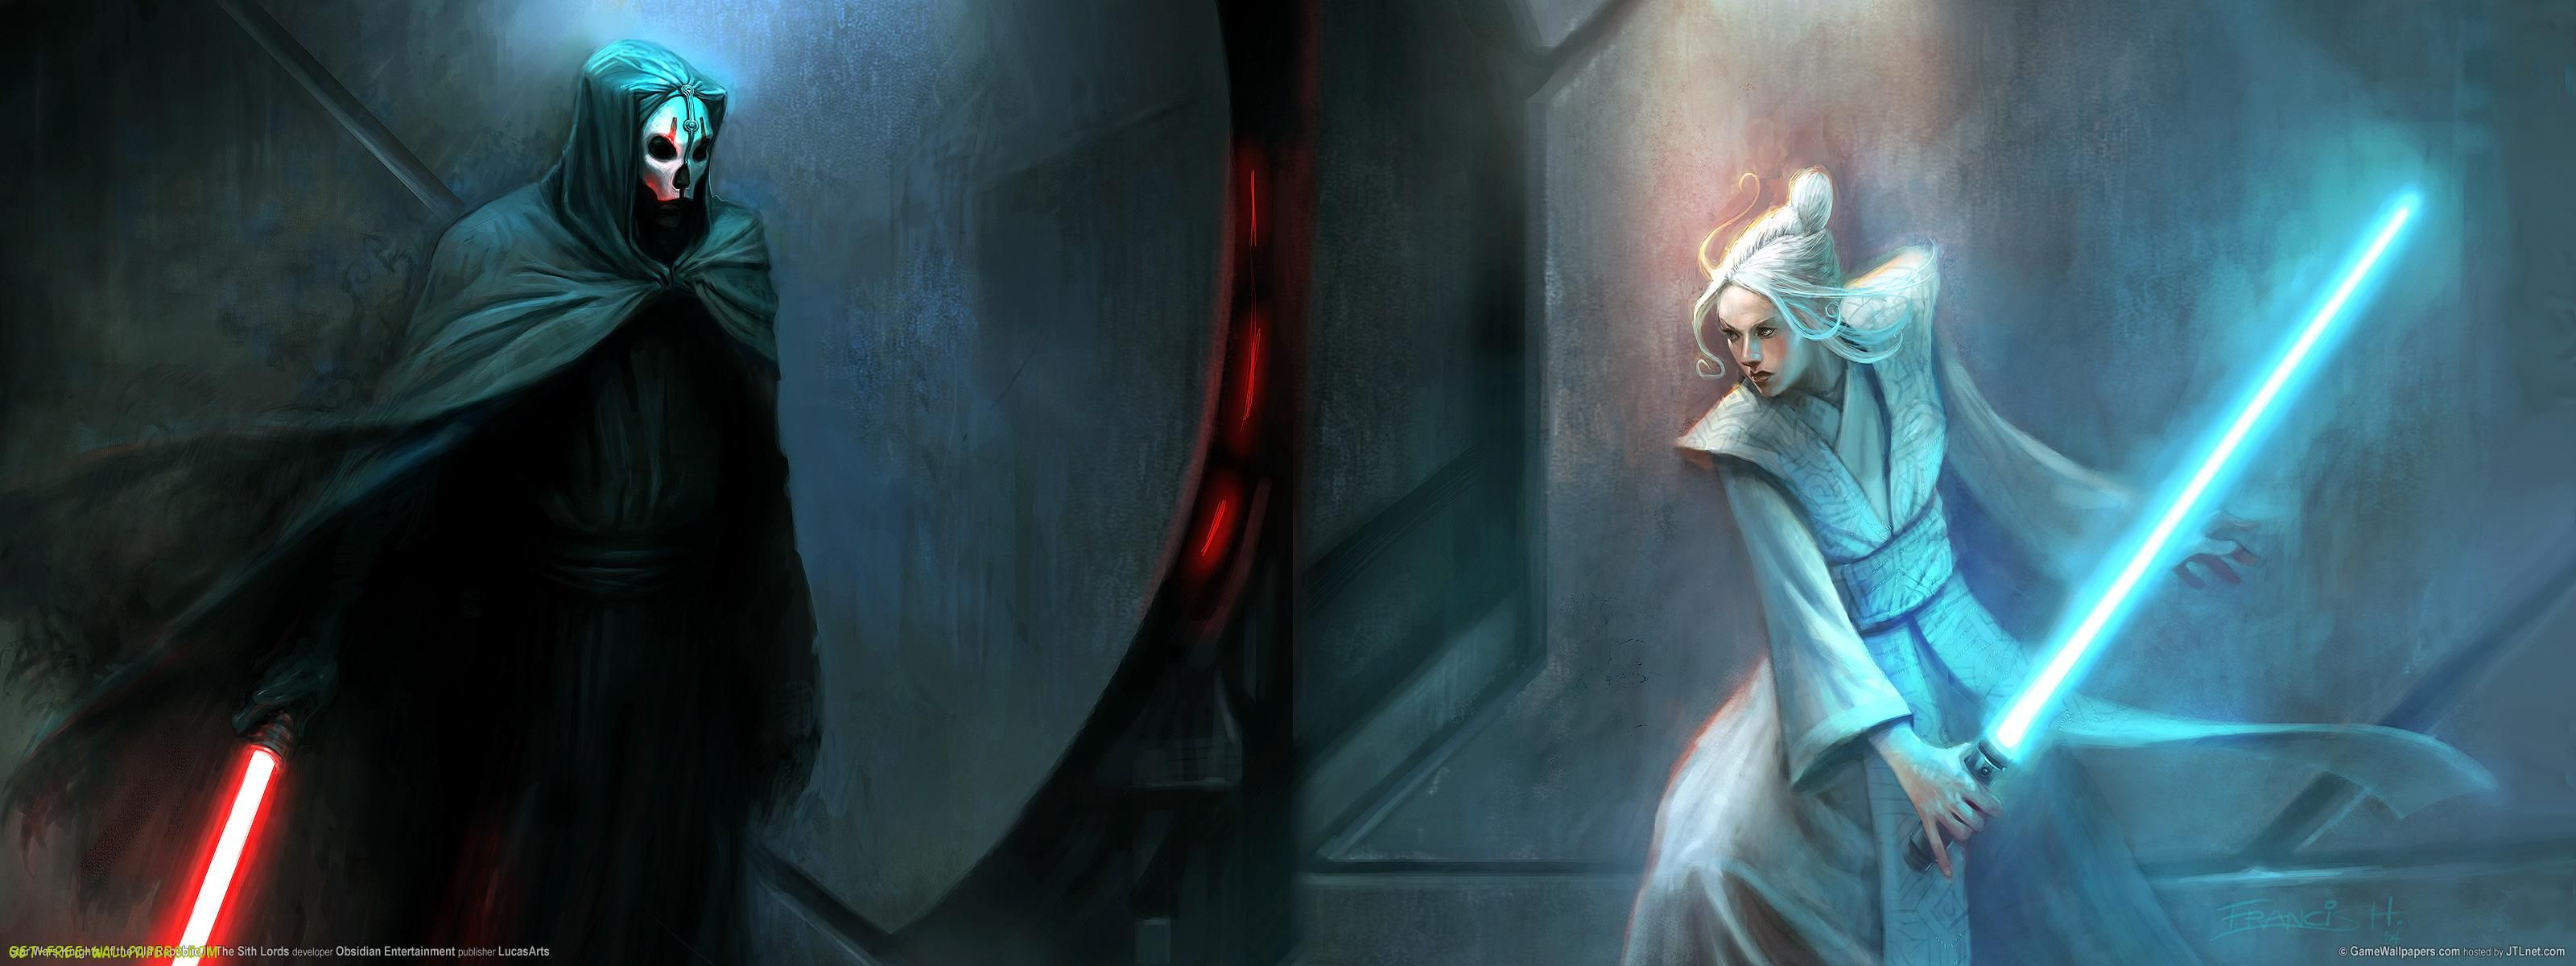 Download Star Wars Knights Of The Old Republic Wallpaper Star Wars Characters Poster Star Wars The Old Star Wars Novels